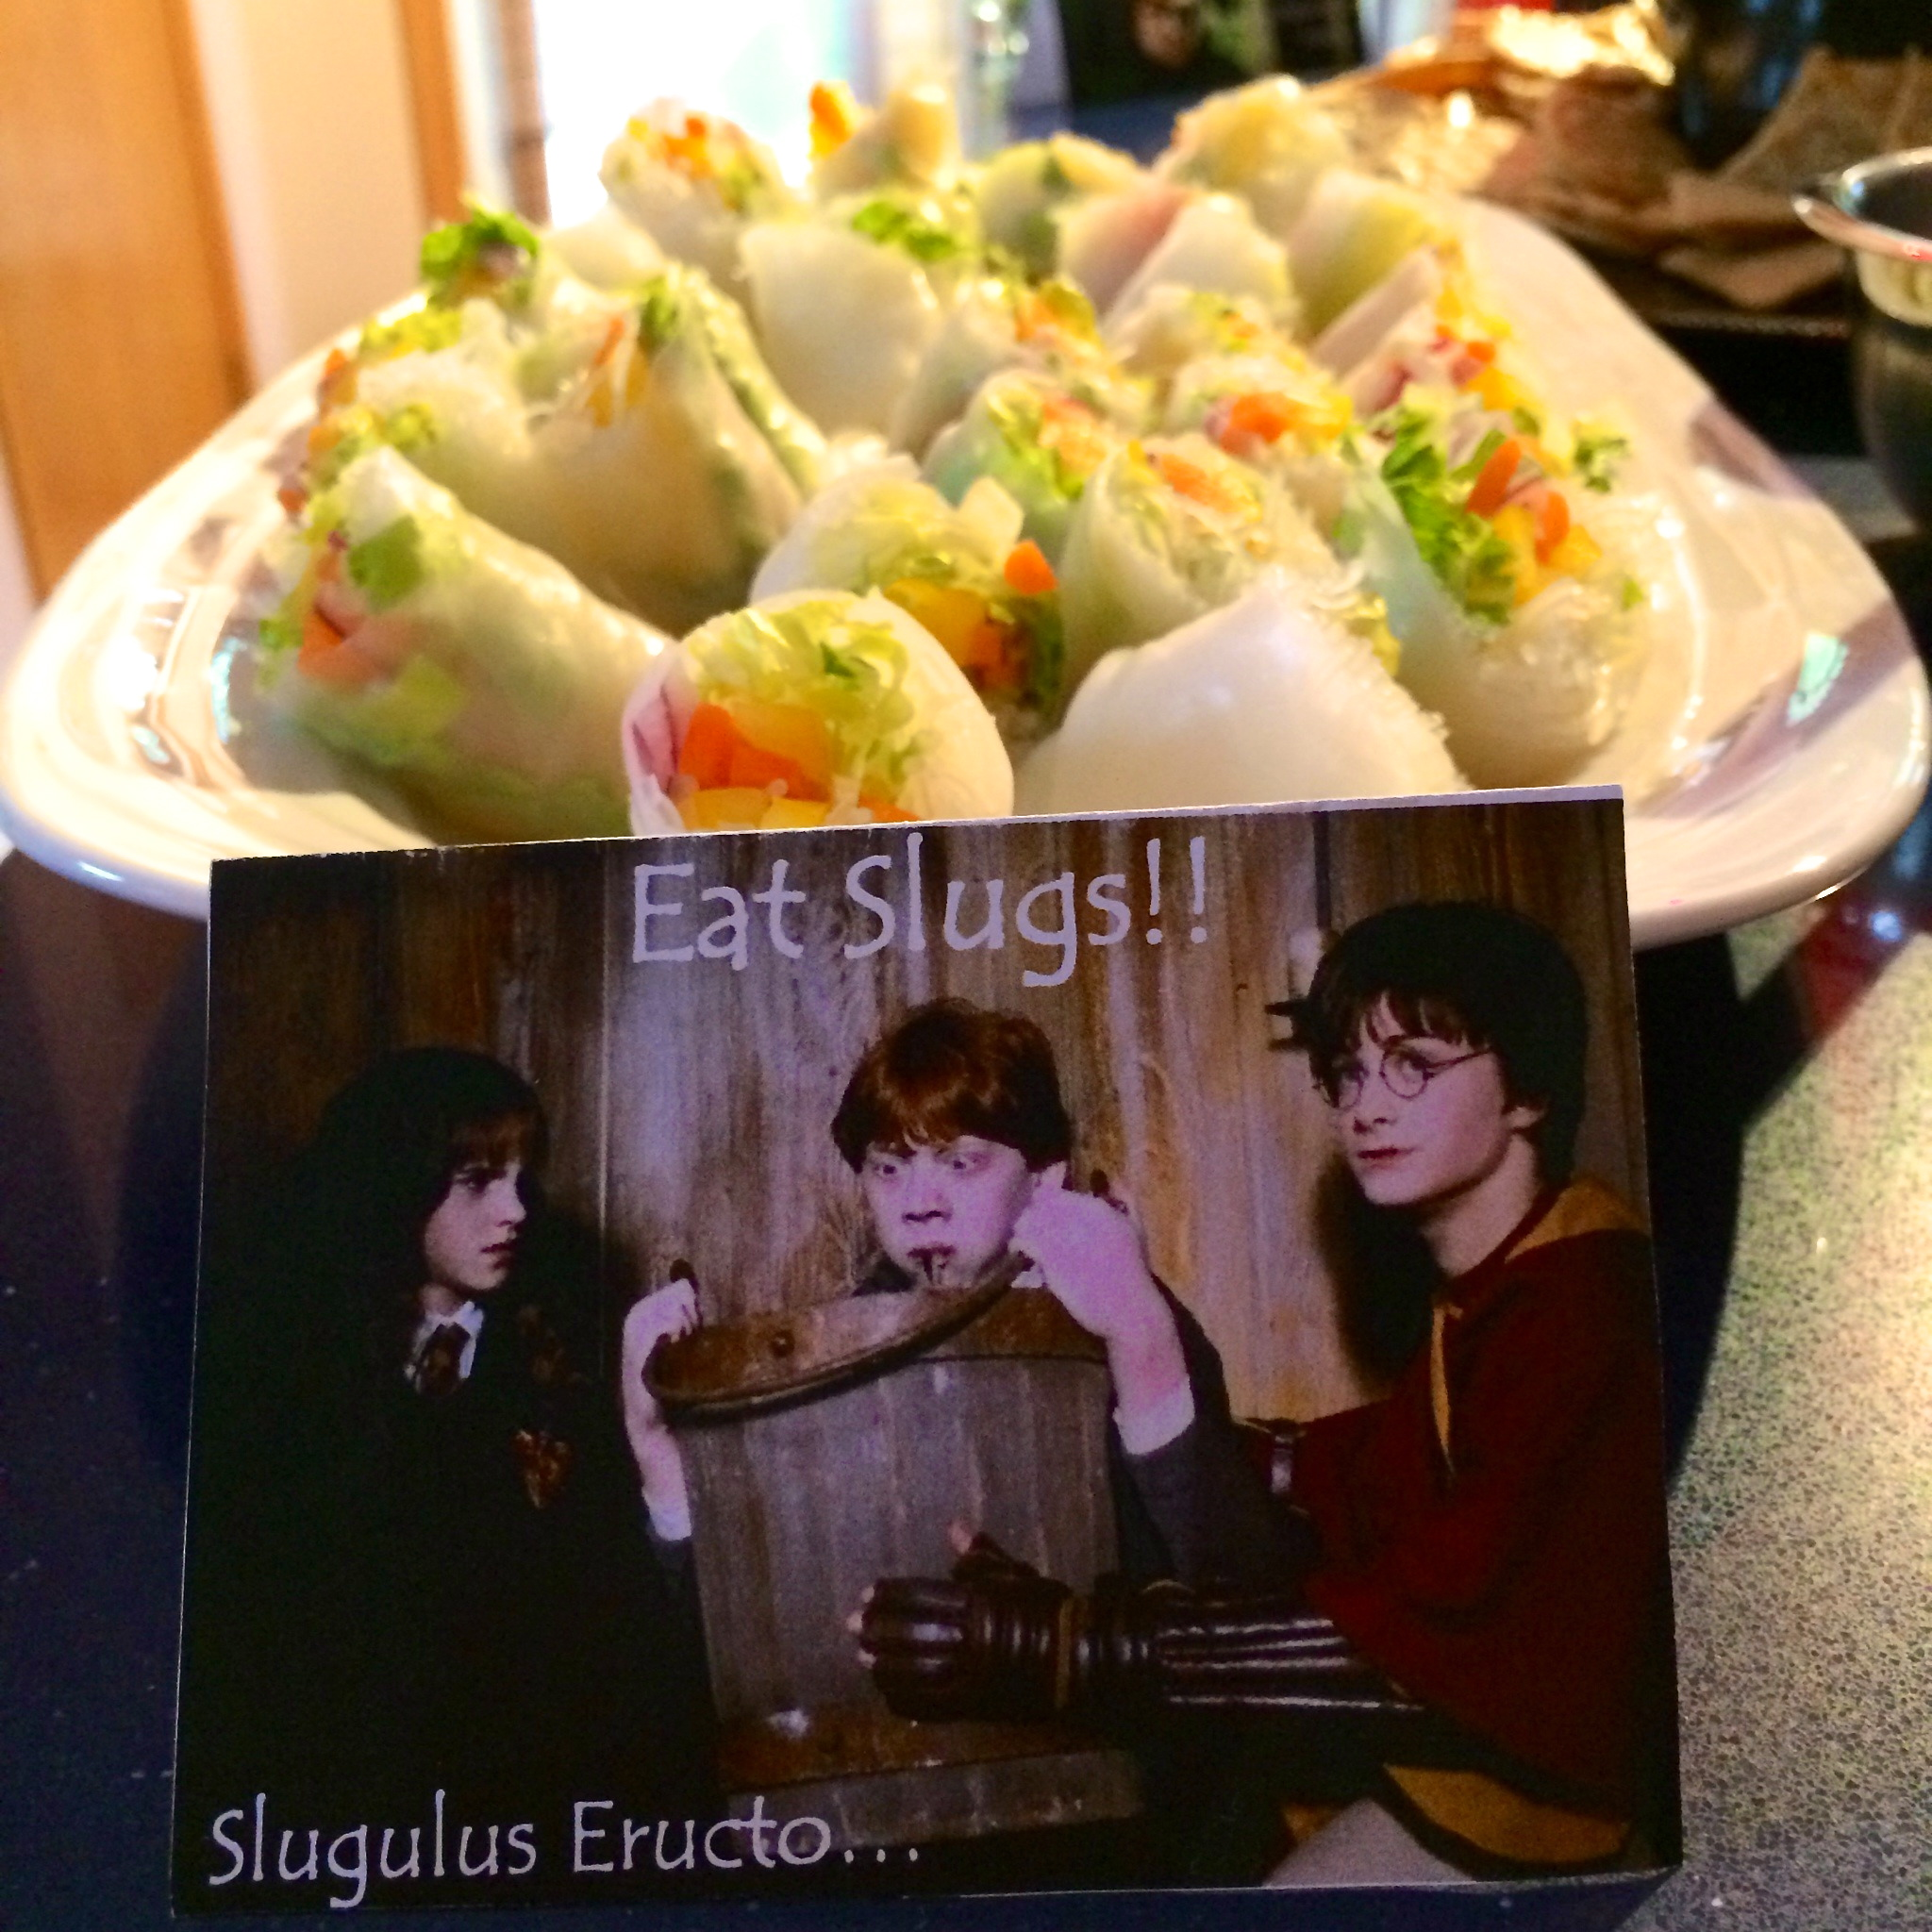 The tastiest slugs you will ever have. They're Ron approved!